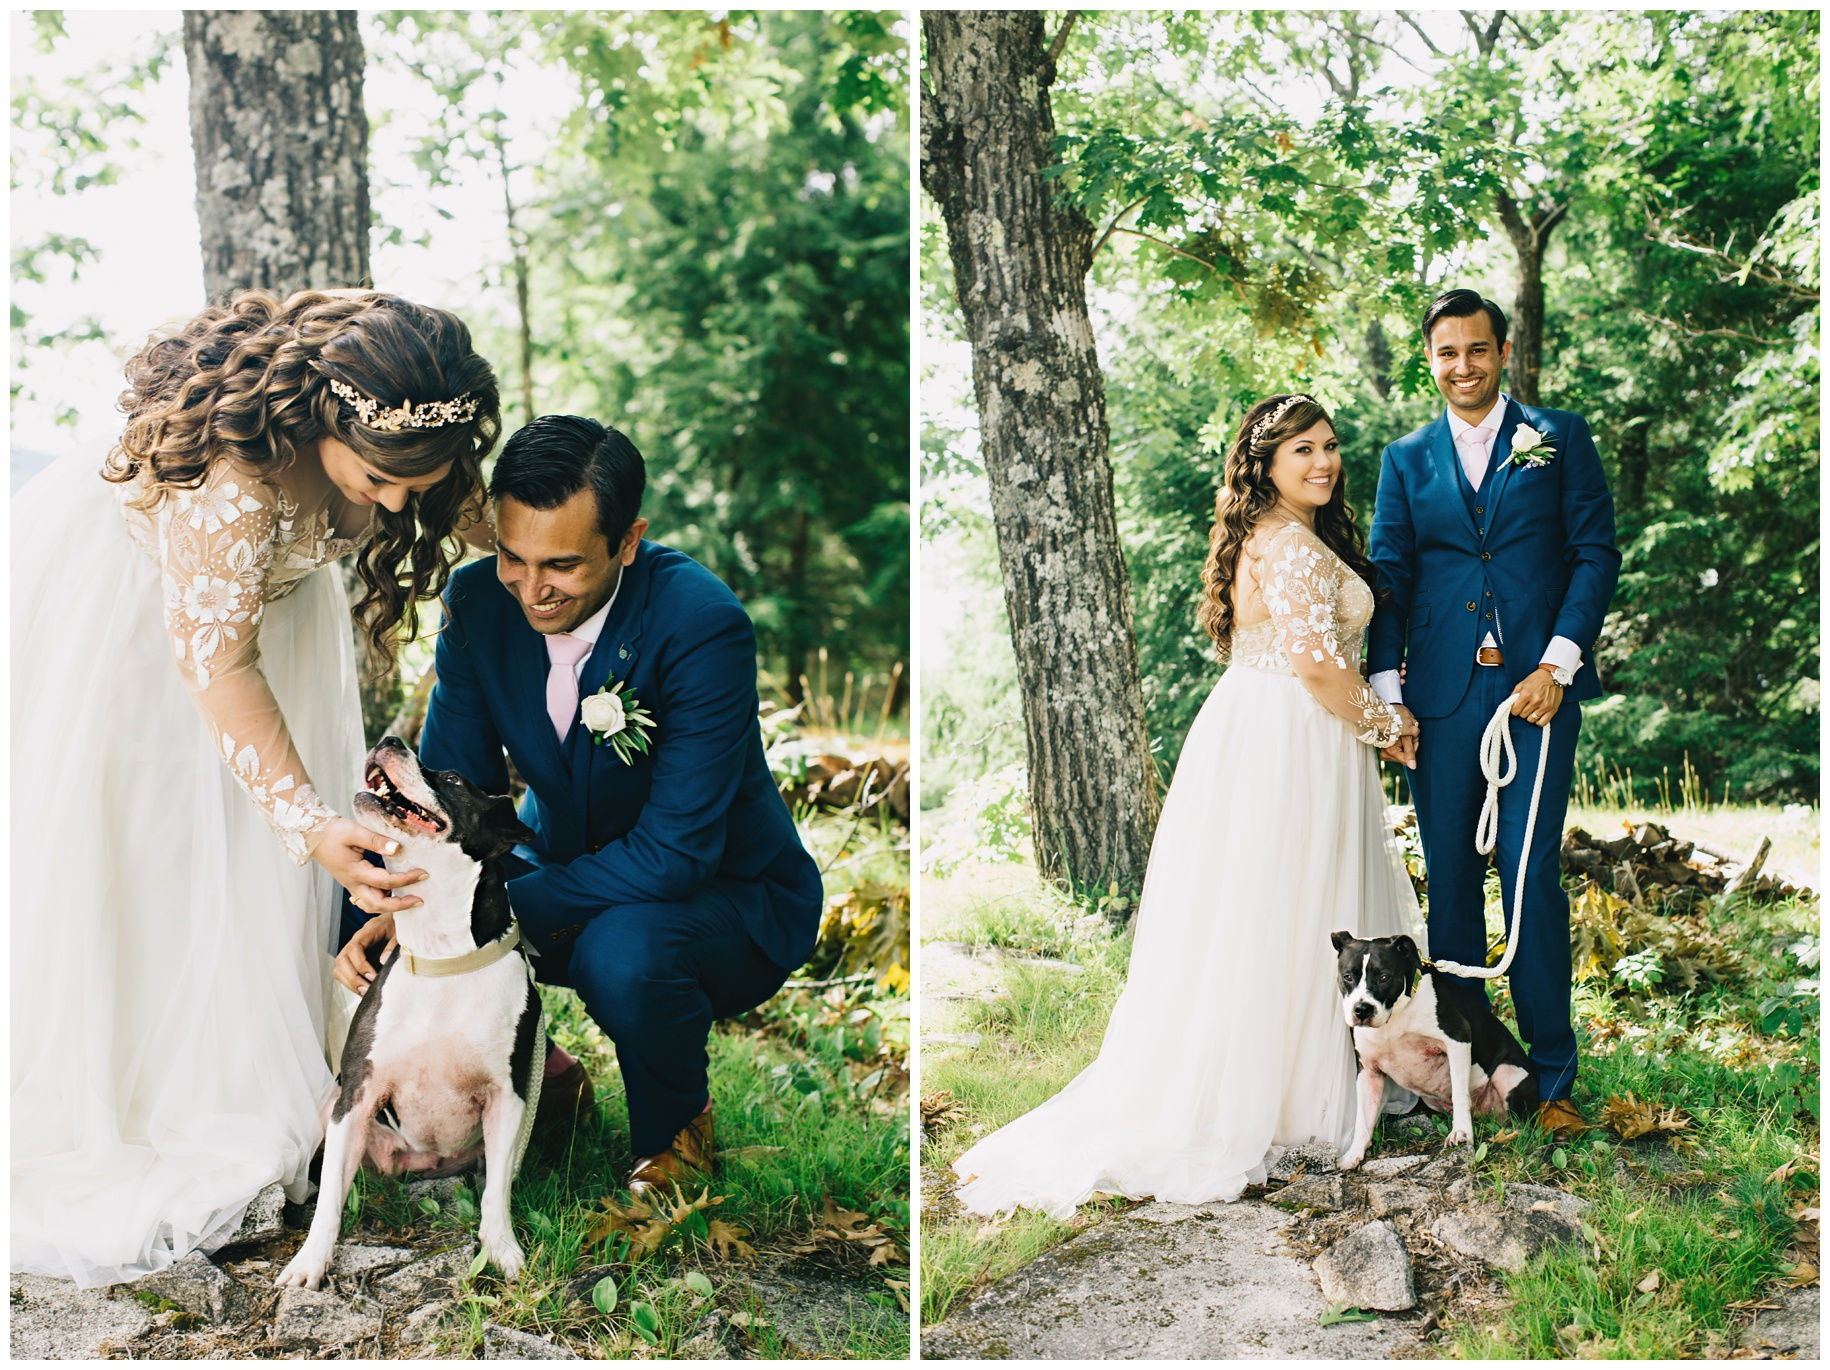 Maine_wedding_photographer_Granite_Ridge_Estate_mountain_barn-013